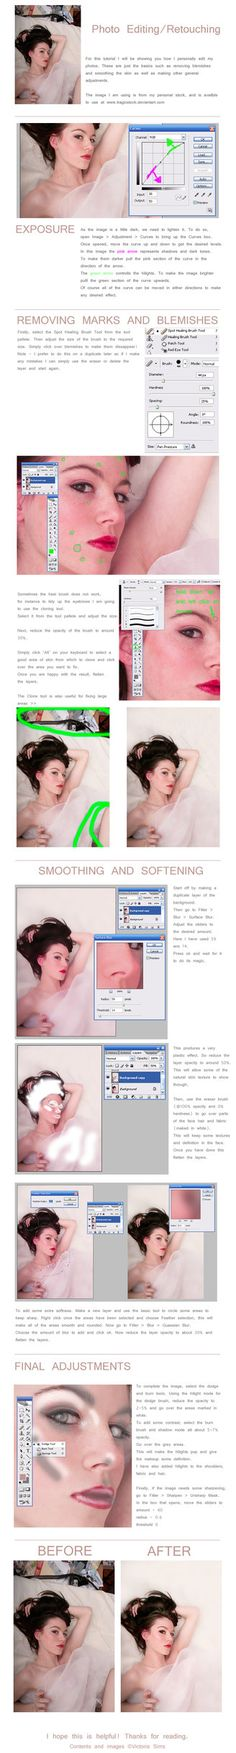 When I have some time, I'll improve my photoshop skills from average to pro ;D Photo Editing / Retouching Basic editing tutorial using adobe Photoshop Adobe Photoshop, Lightroom, Photoshop Elements, Photoshop Retouching, Photo Retouching, Photoshop Photos, Basic Photoshop Tutorials, Photoshop Photography, Photography Tutorials